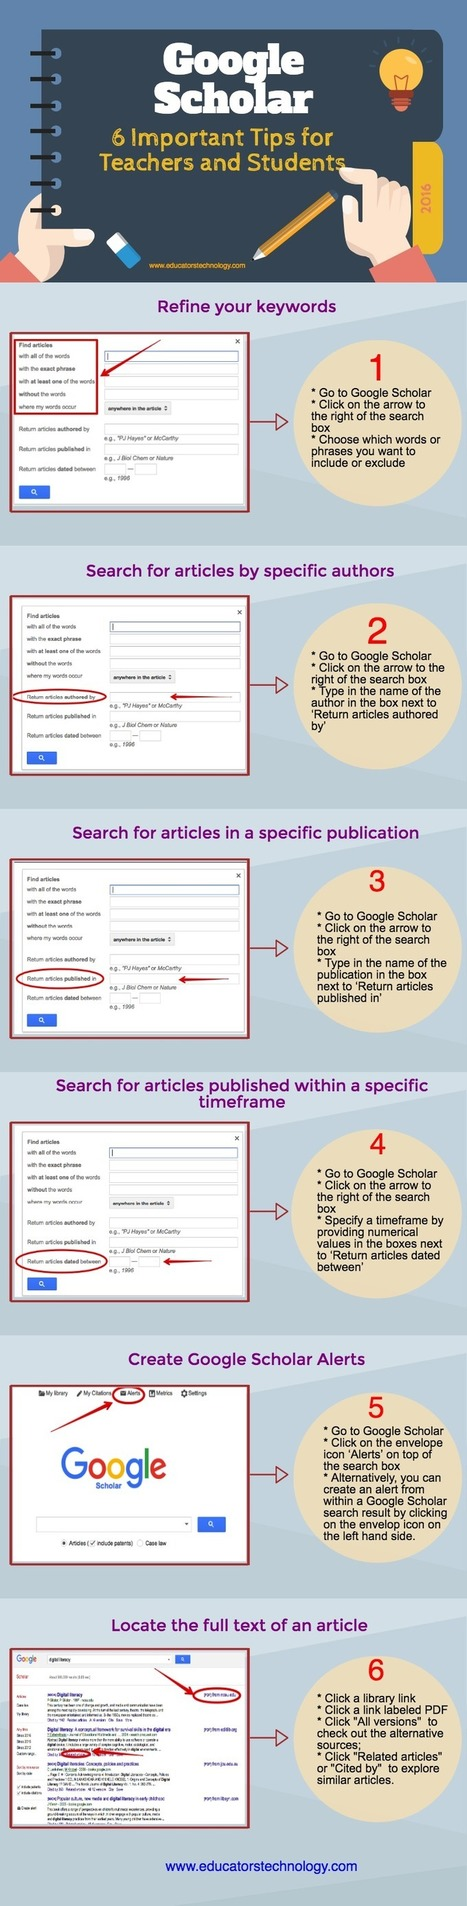 6 Important Google Scholar Tips for Teachers and Students (Poster) ~ Educational Technology and Mobile Learning | The sincerest form of flattery | Scoop.it